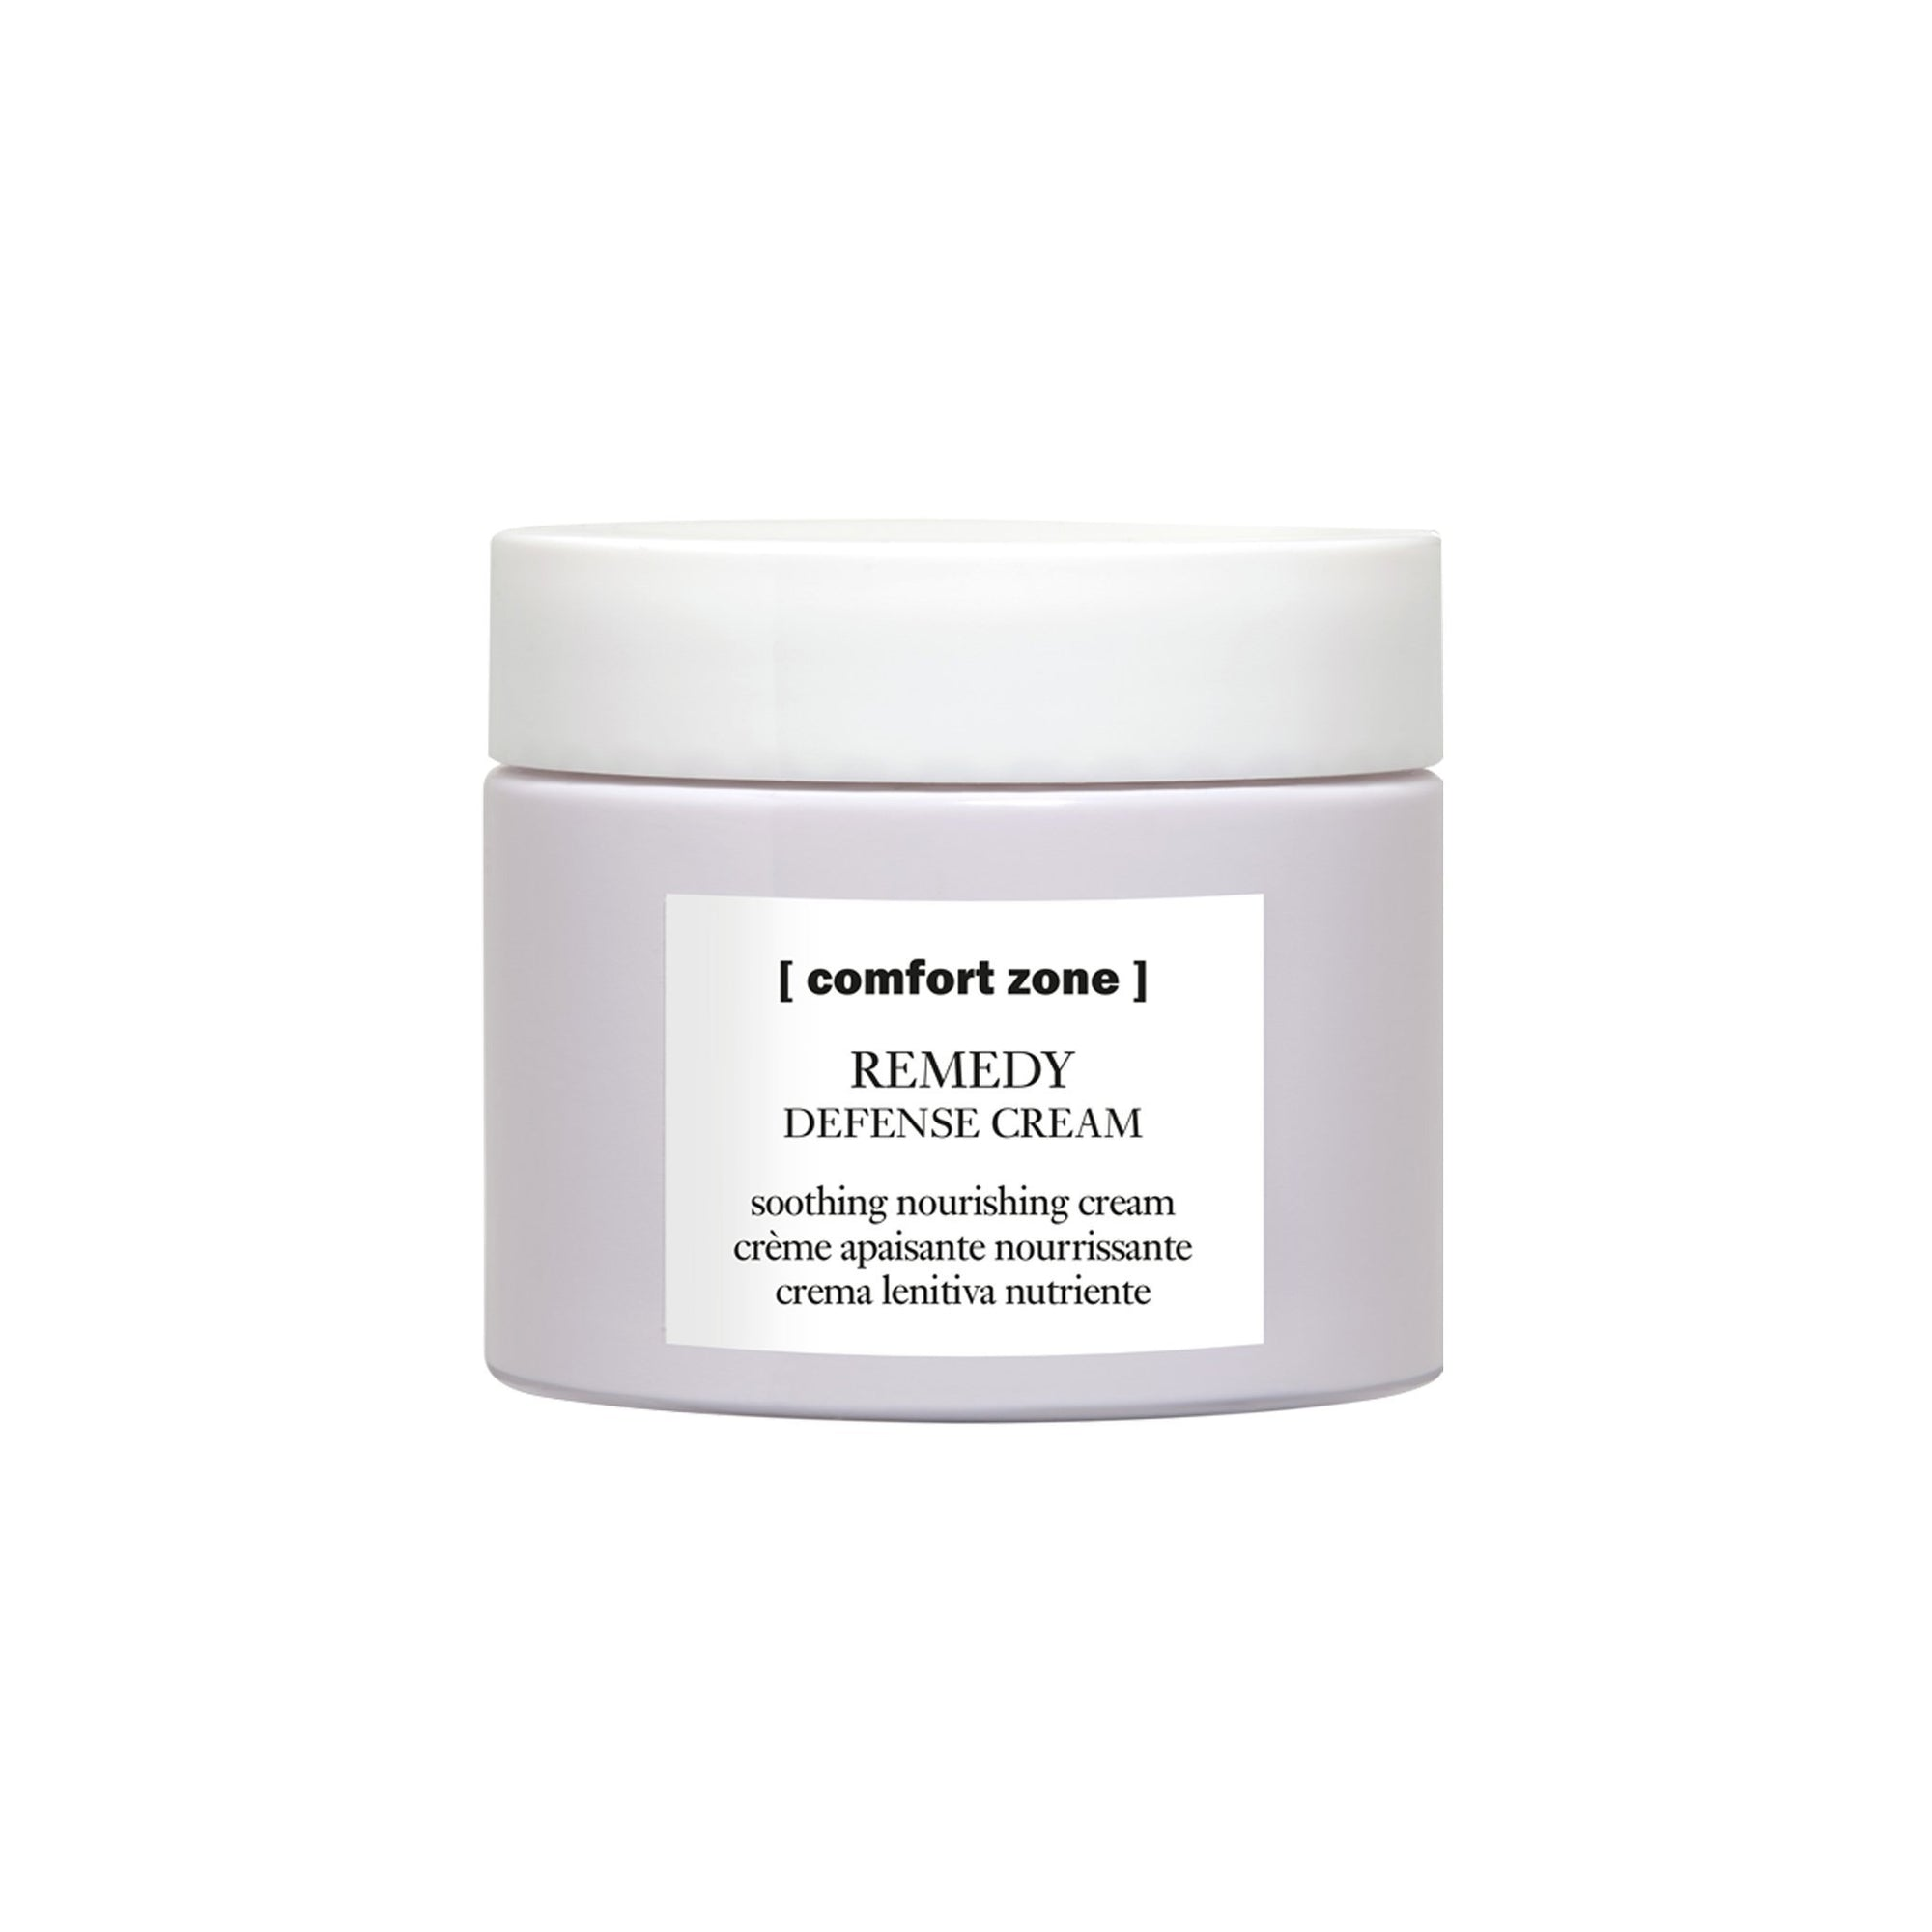 Comfort Zone Remedy Defense Cream 60ml